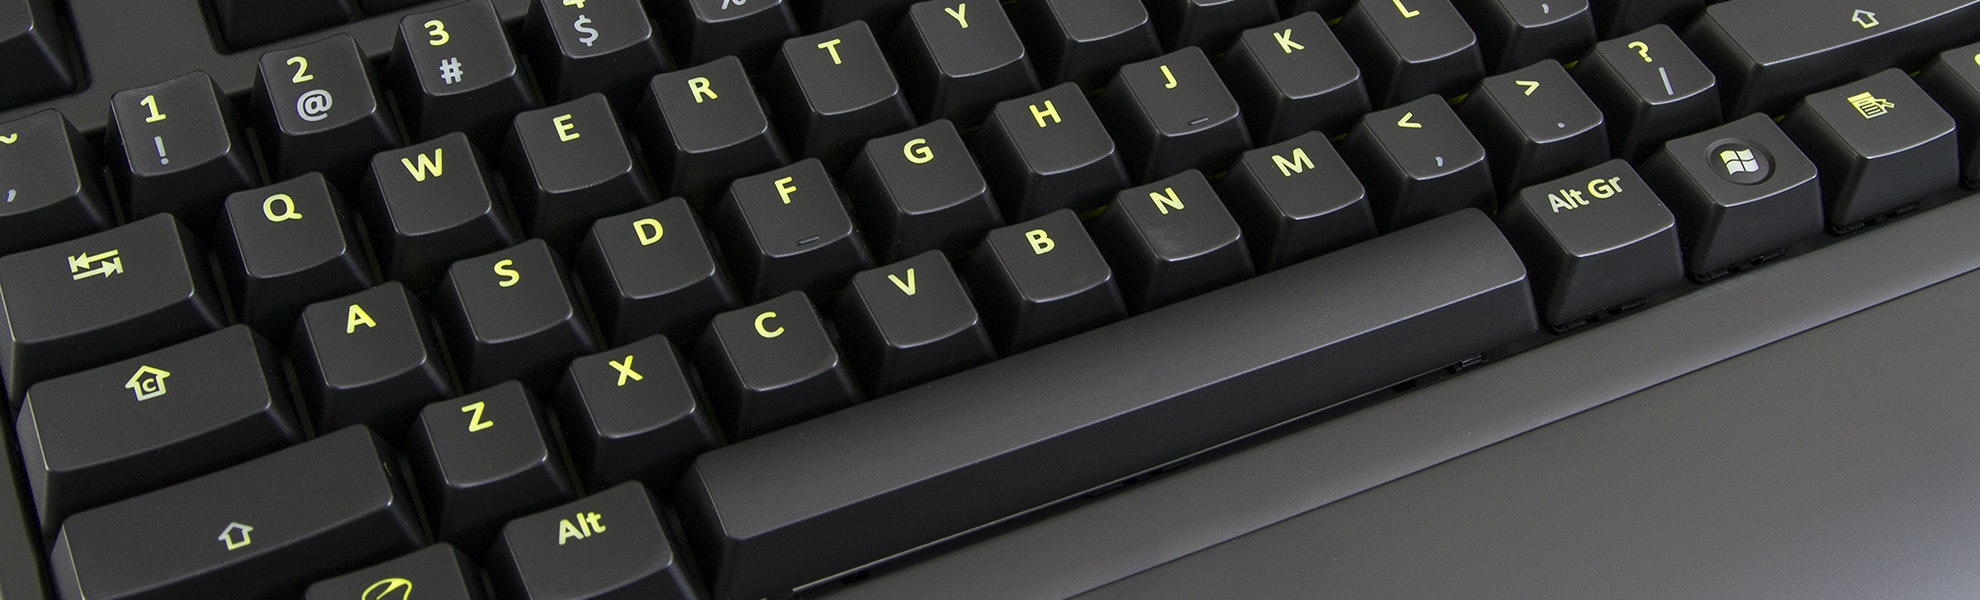 Mionix Zibal 60 Keyboard